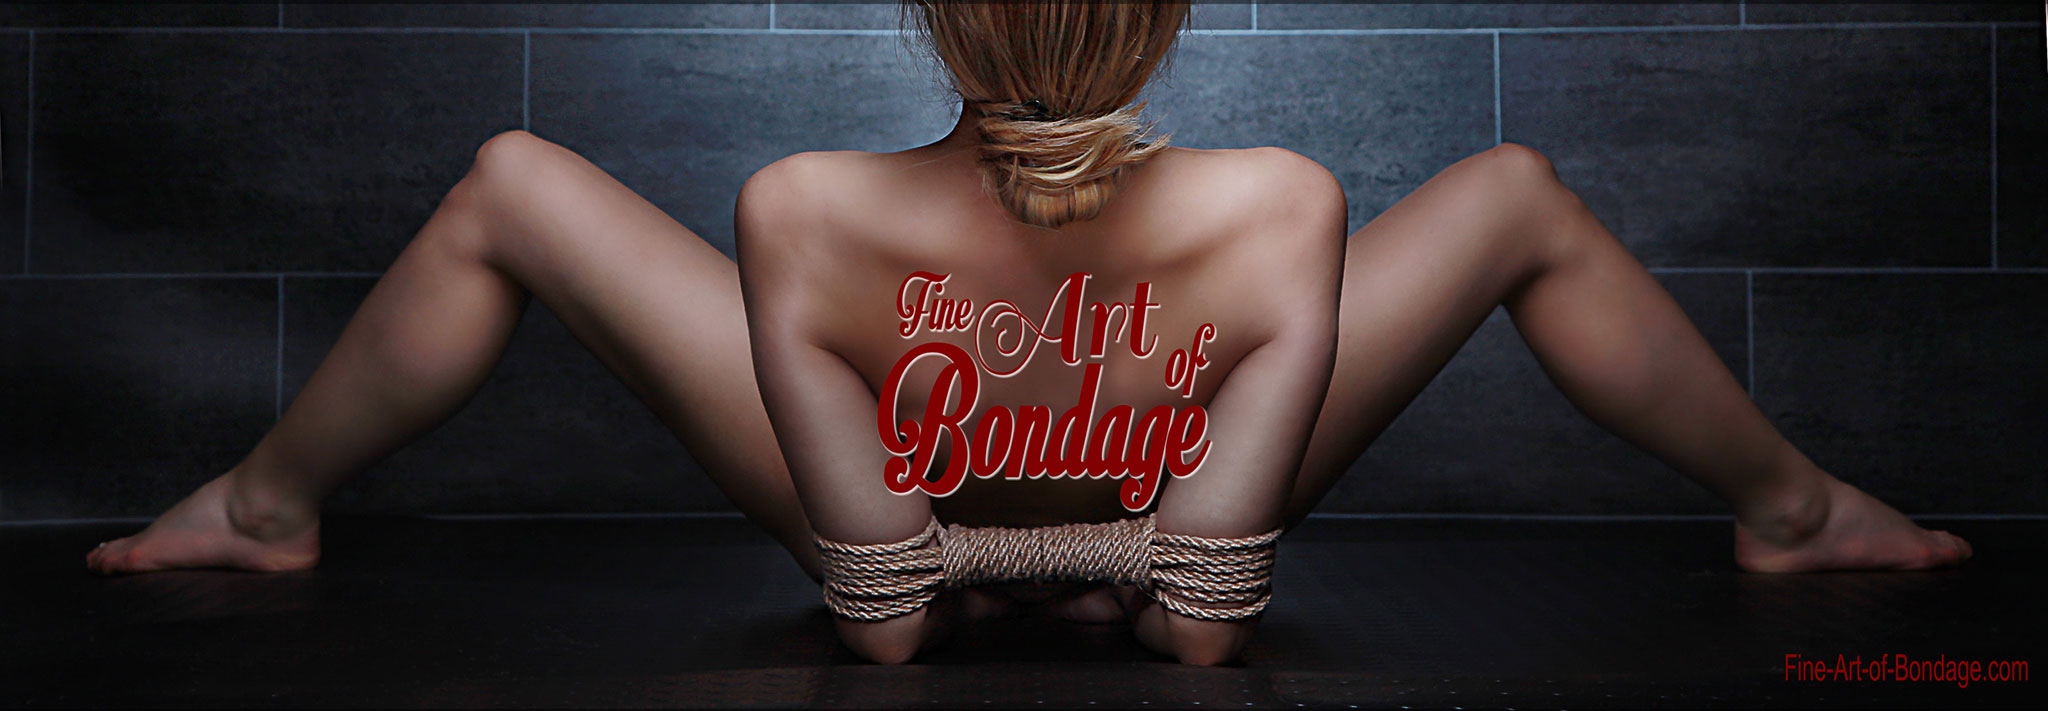 Fine Art of Bondage